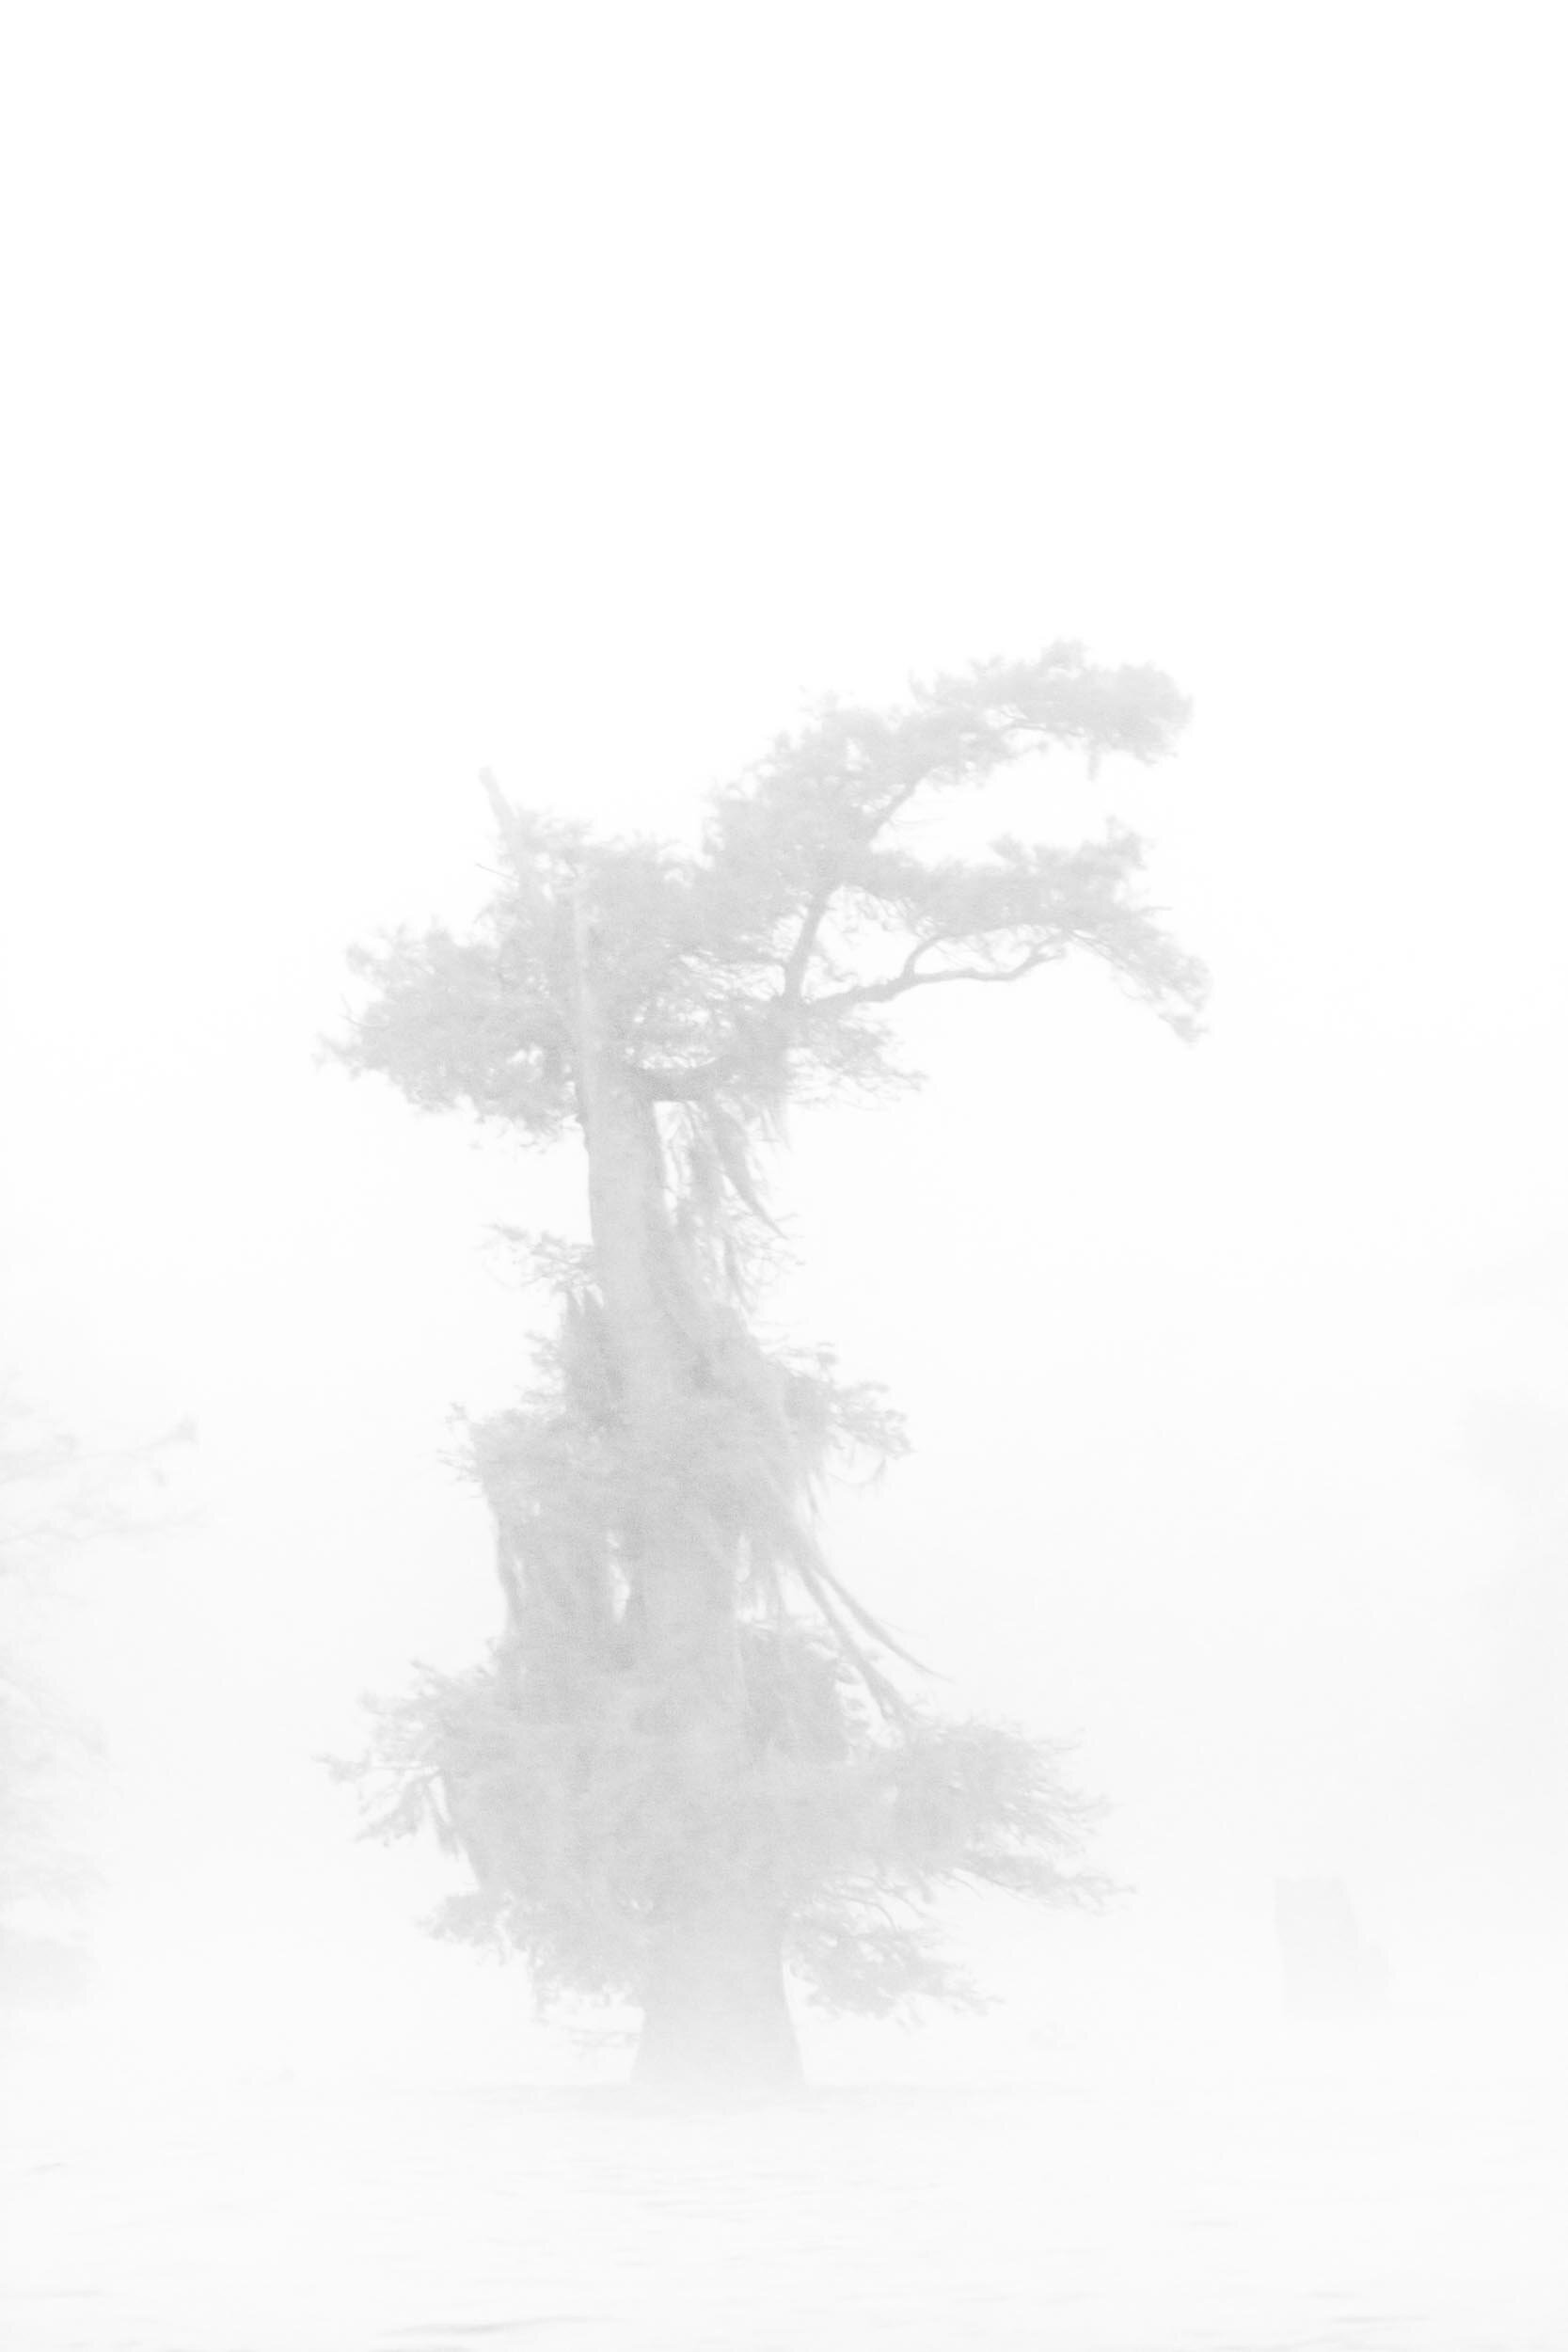 Black and White Cypress in the Fog–Henderson Swamp